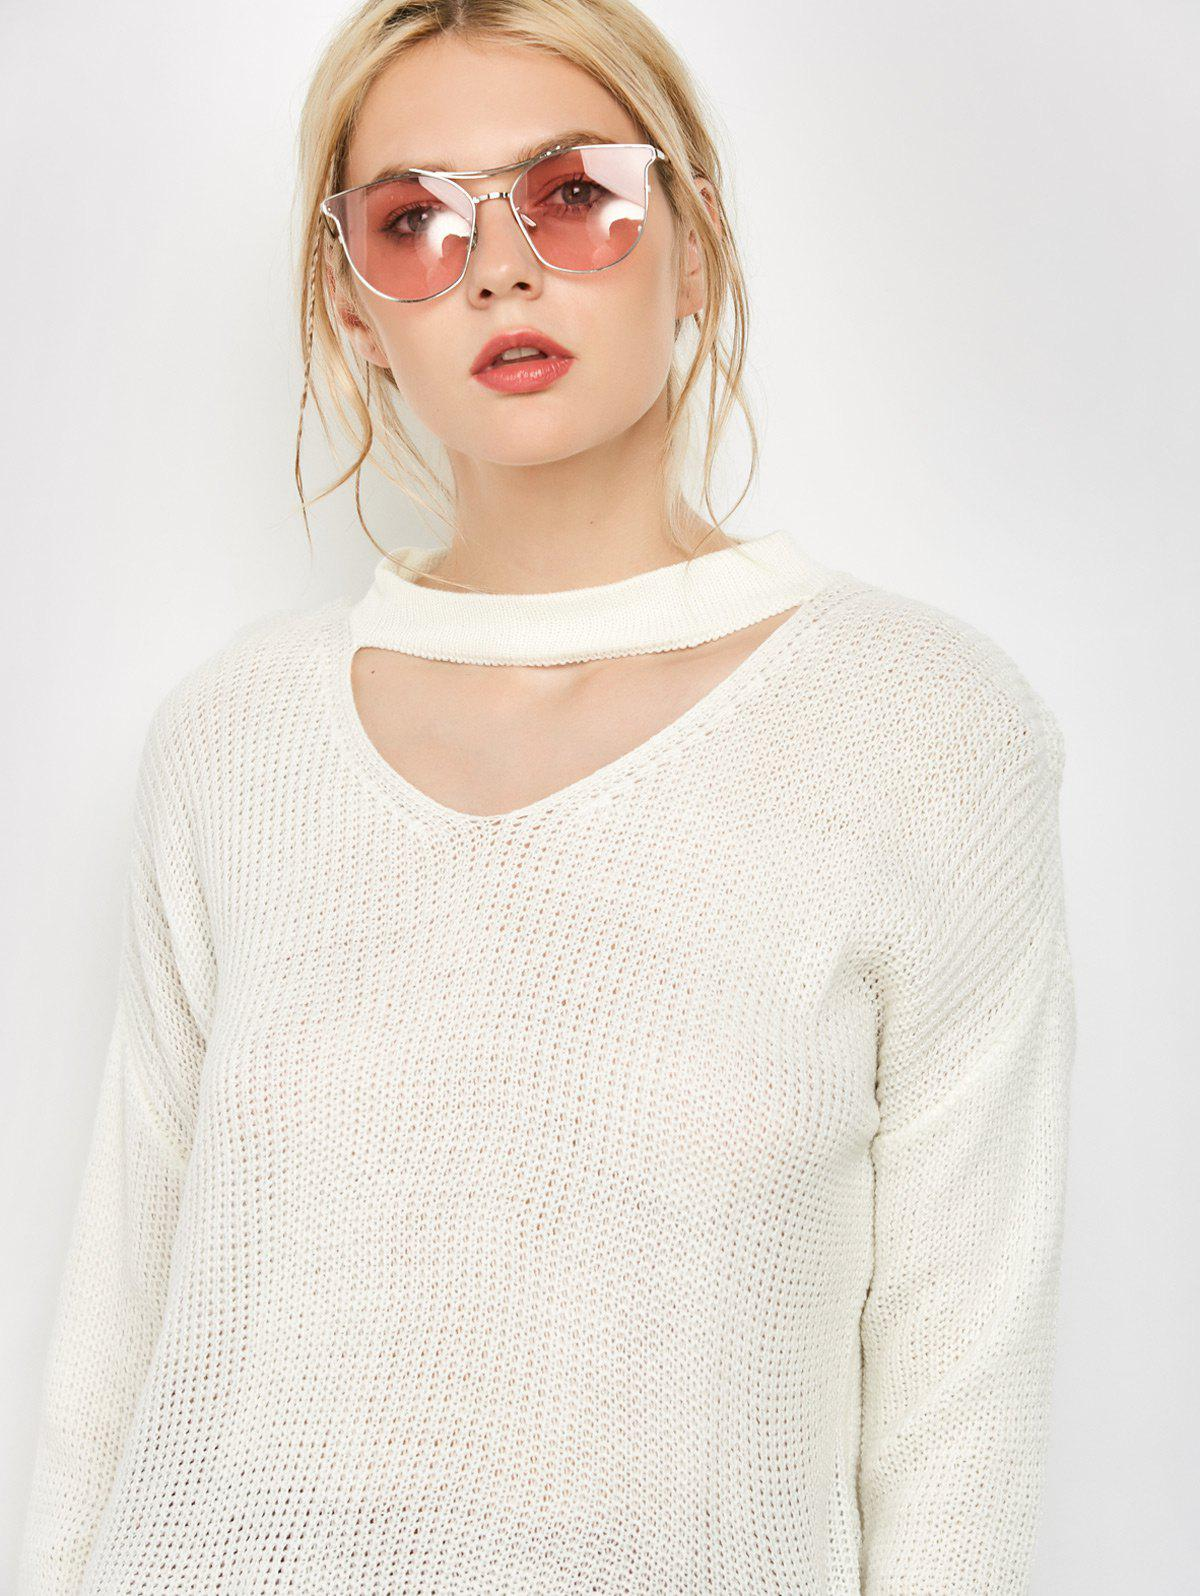 Skinny Cotton Long Sleeve Choker T-Shirt - WHITE S